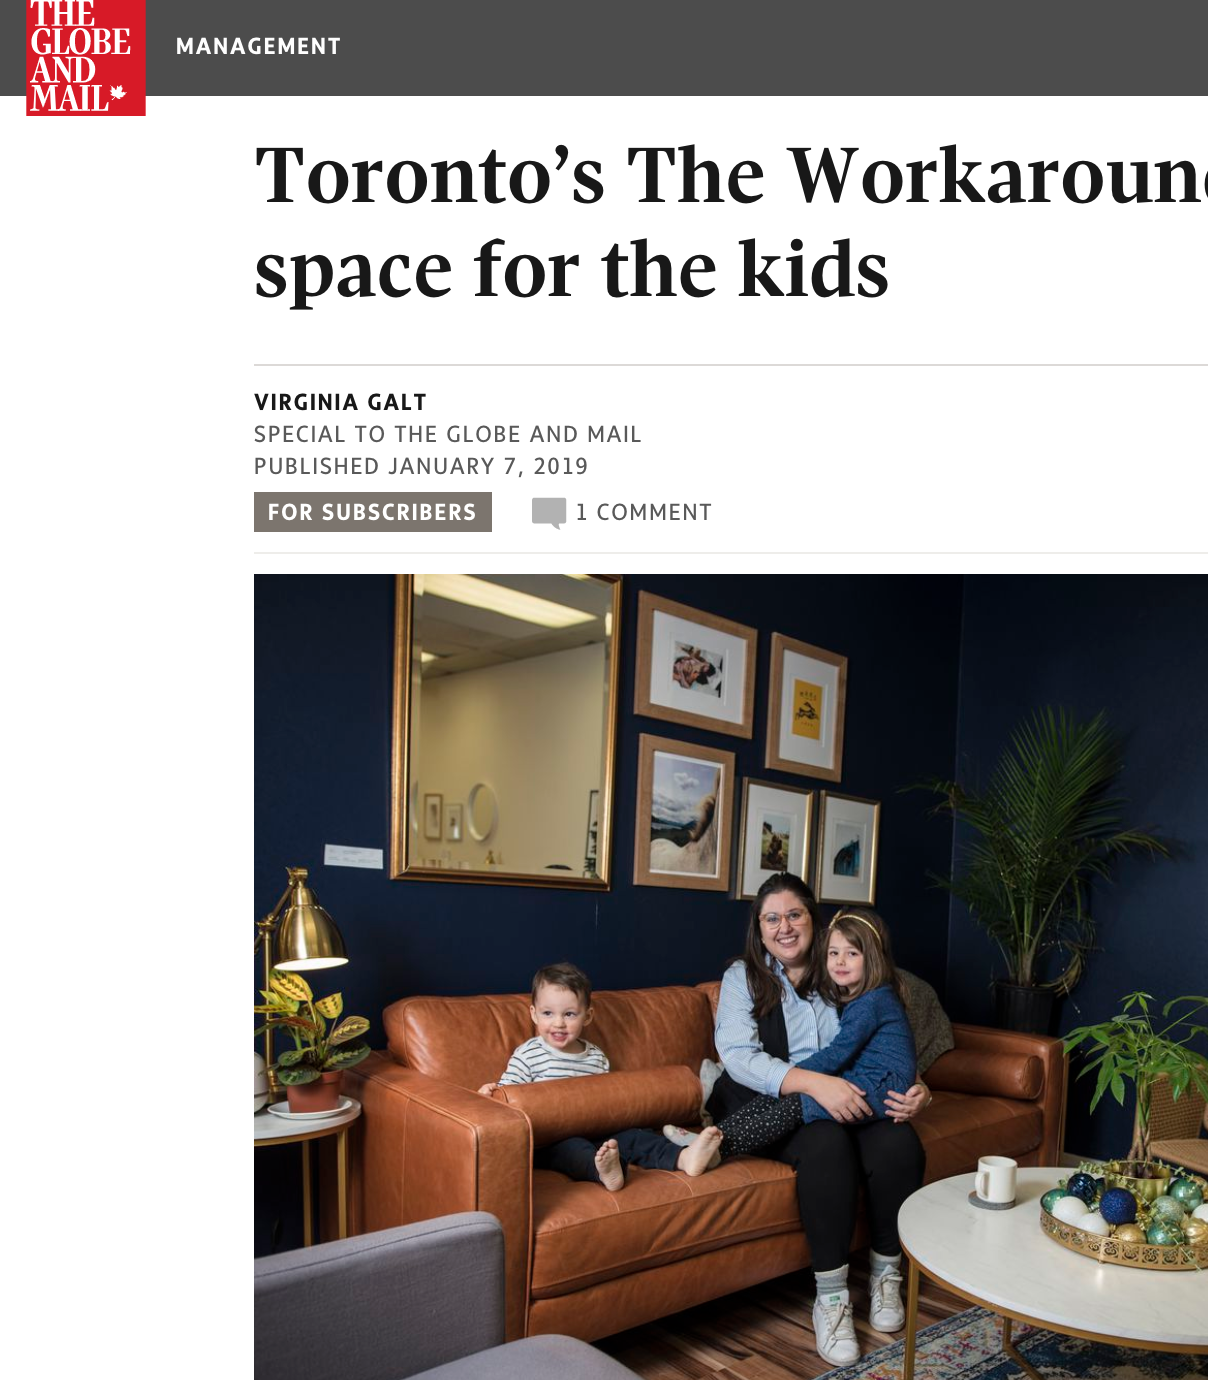 The Globe and Mail: January 2019